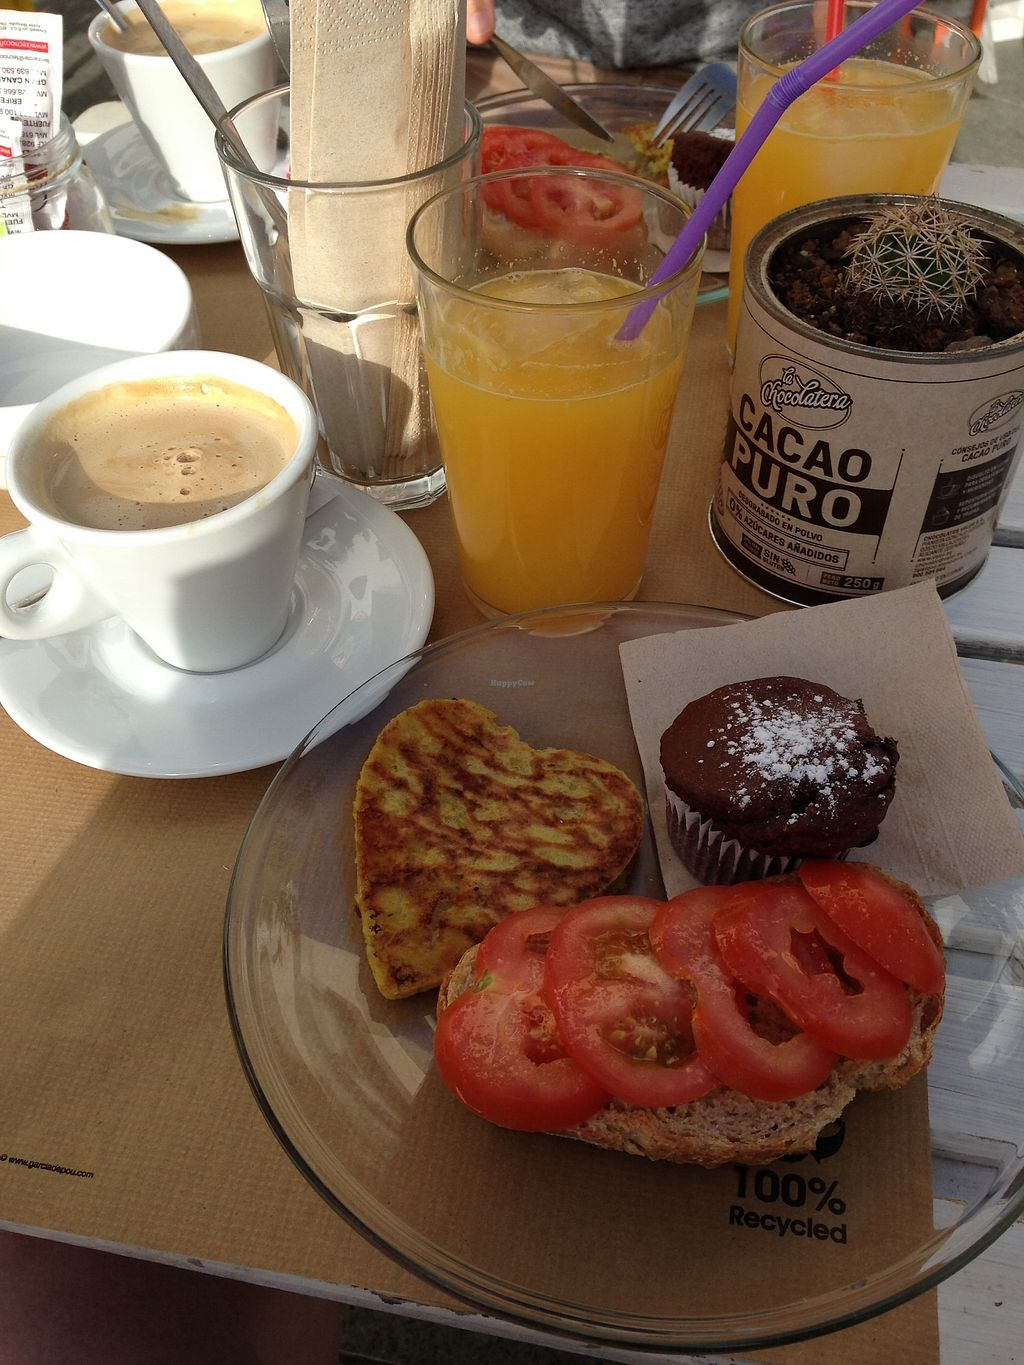 "Photo of H2O Juice Bar & Vegan Cafe  by <a href=""/members/profile/planteatingem"">planteatingem</a> <br/>Viva vegan breakfast <br/> January 22, 2018  - <a href='/contact/abuse/image/64475/349717'>Report</a>"